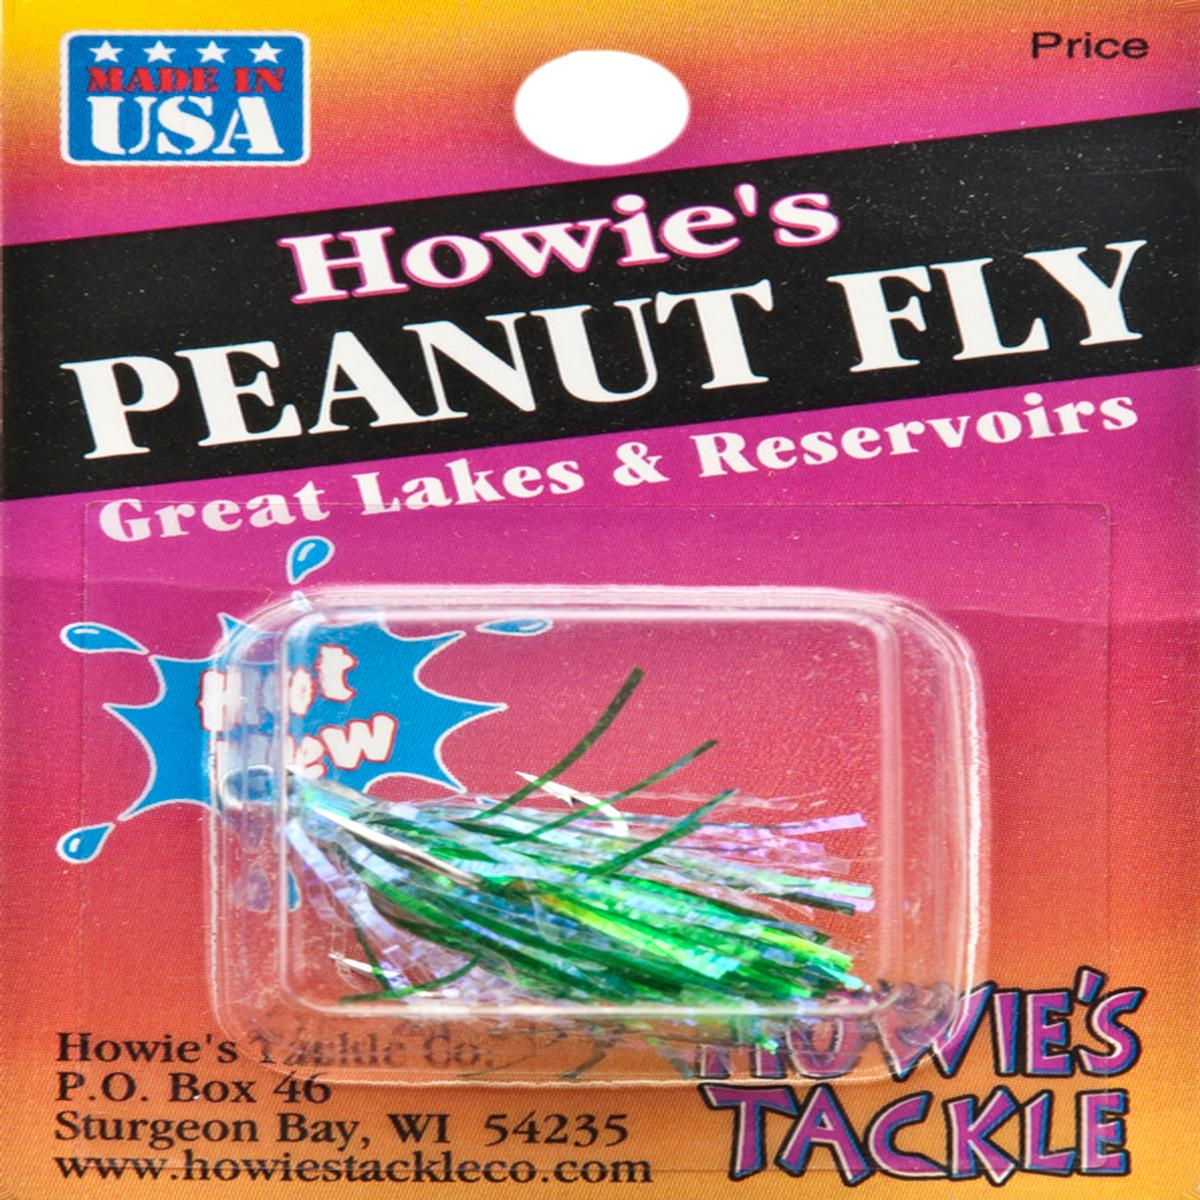 Howies Tackle Peanut Fly Fishing Lure Green Black 20023 by Howies Tackle